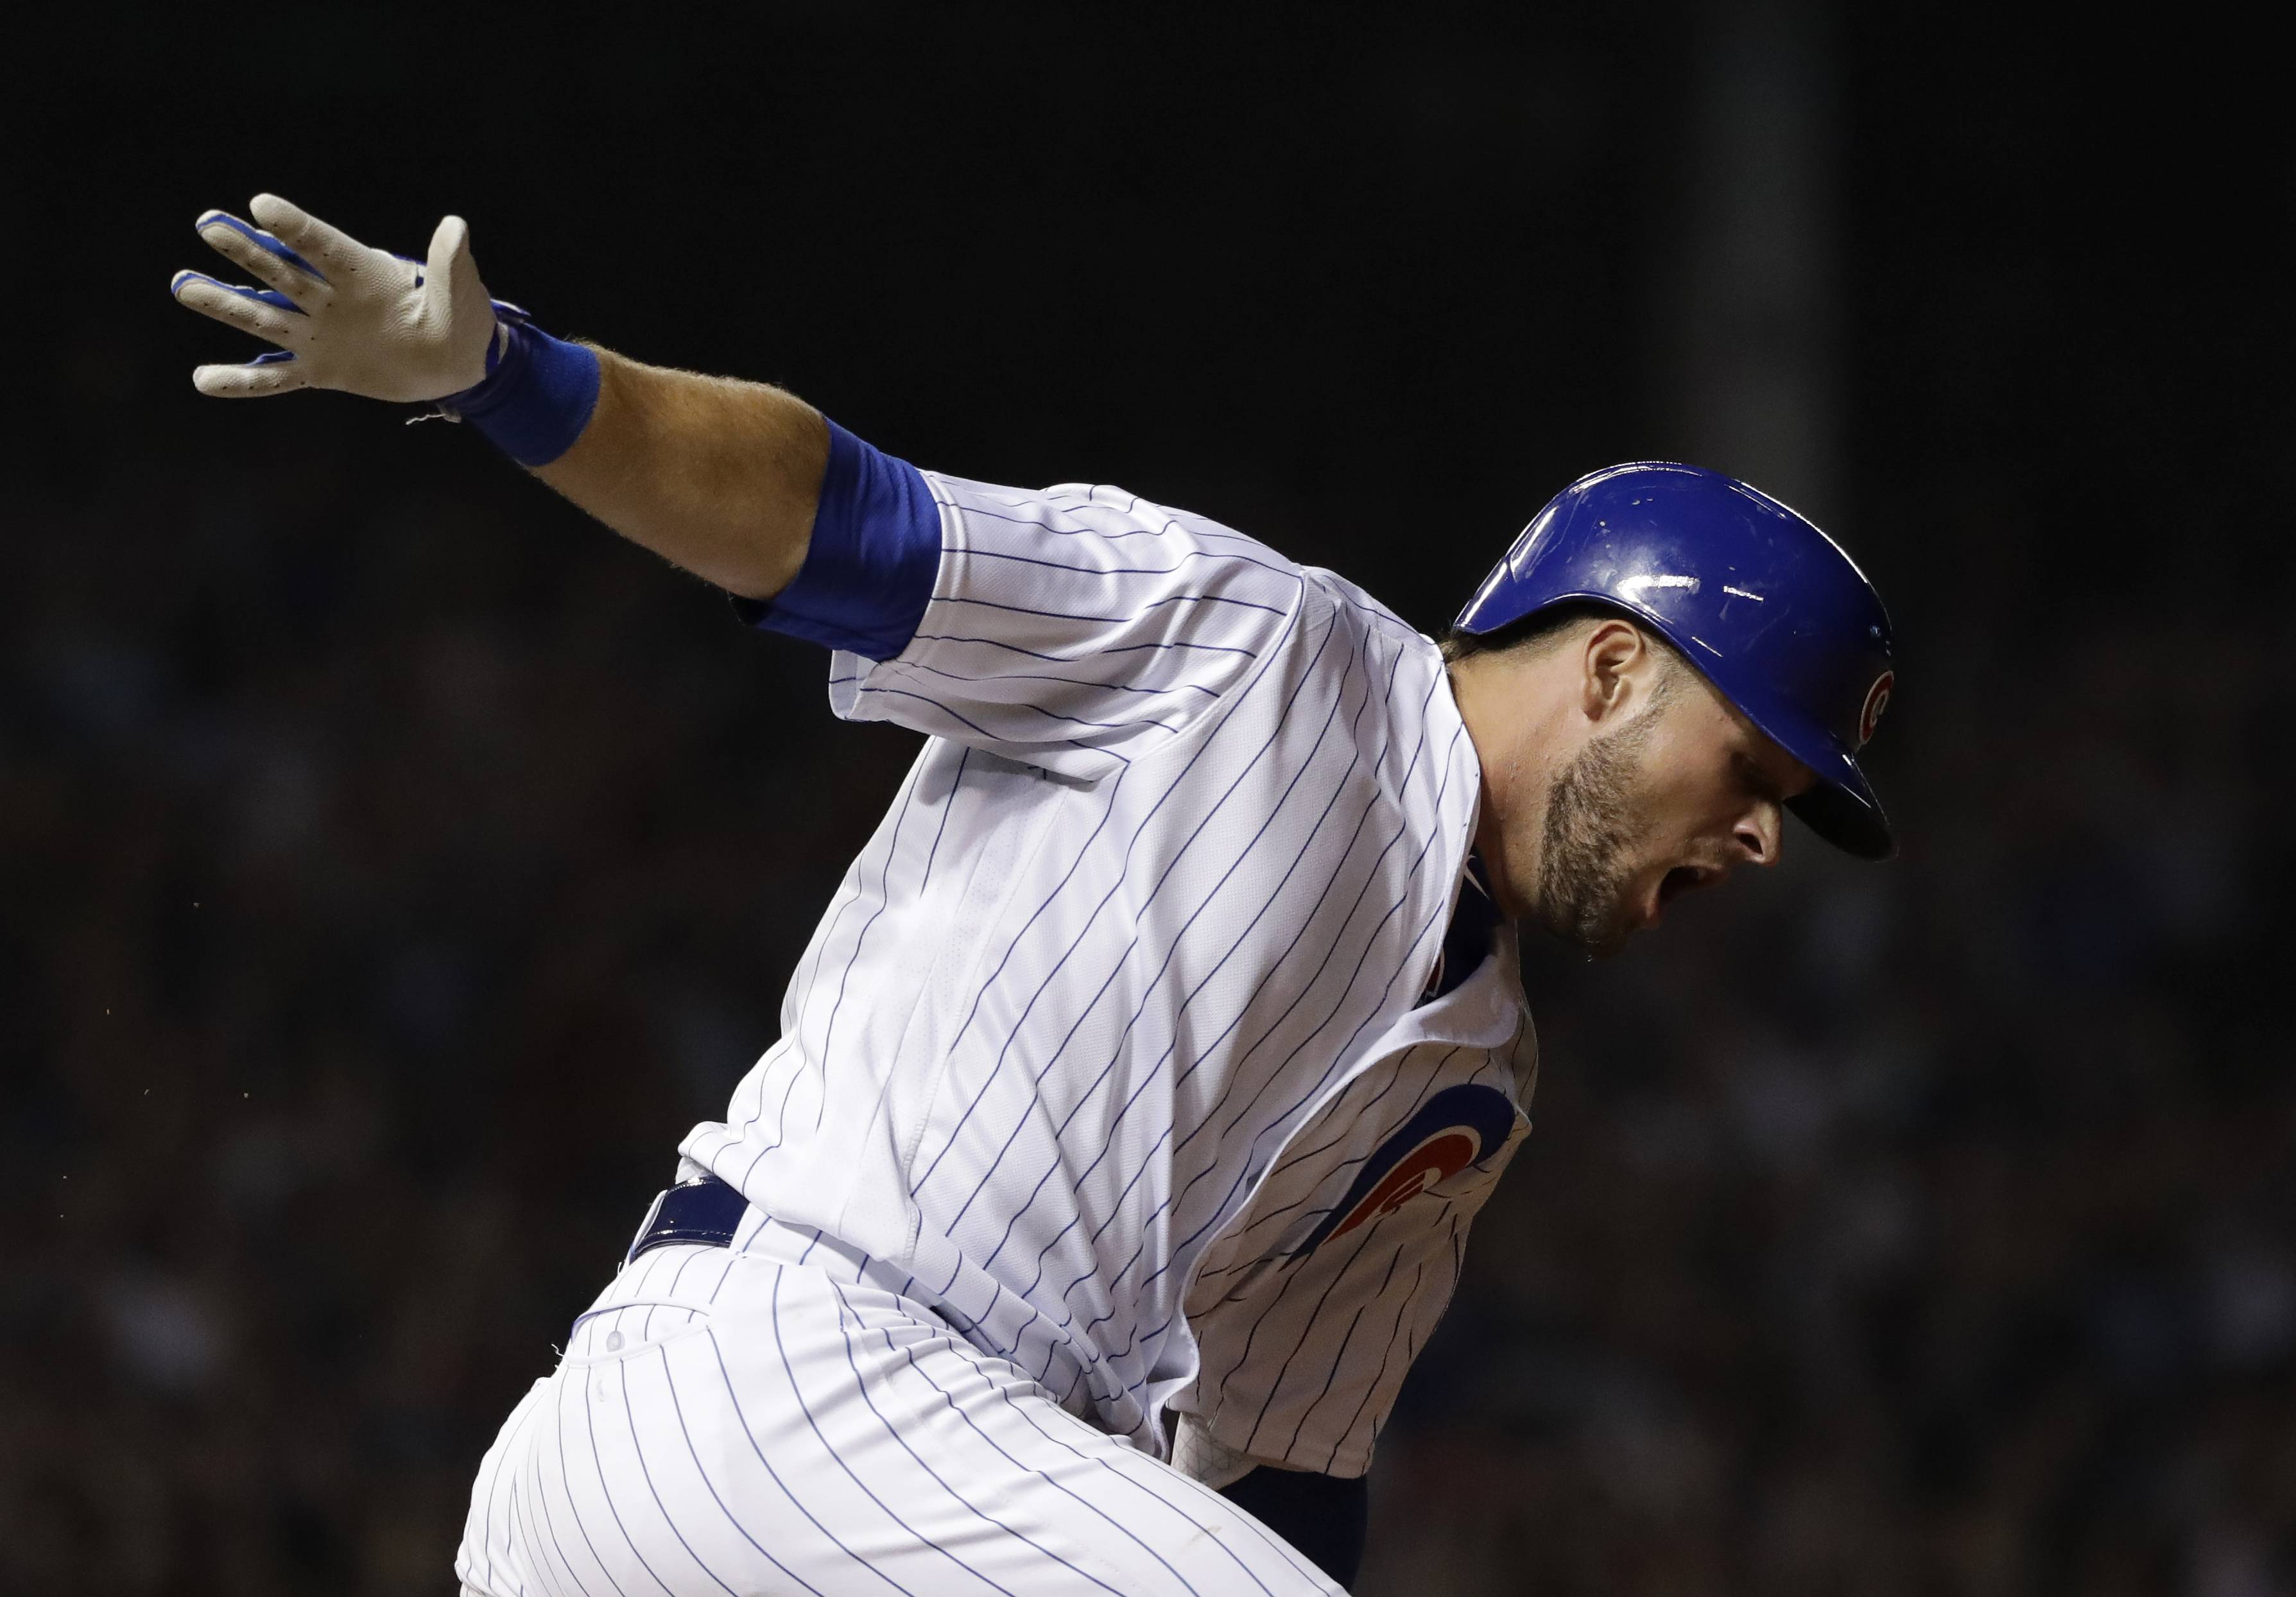 Bote's not basking, he's tasking in bid to stick with Chicago Cubs